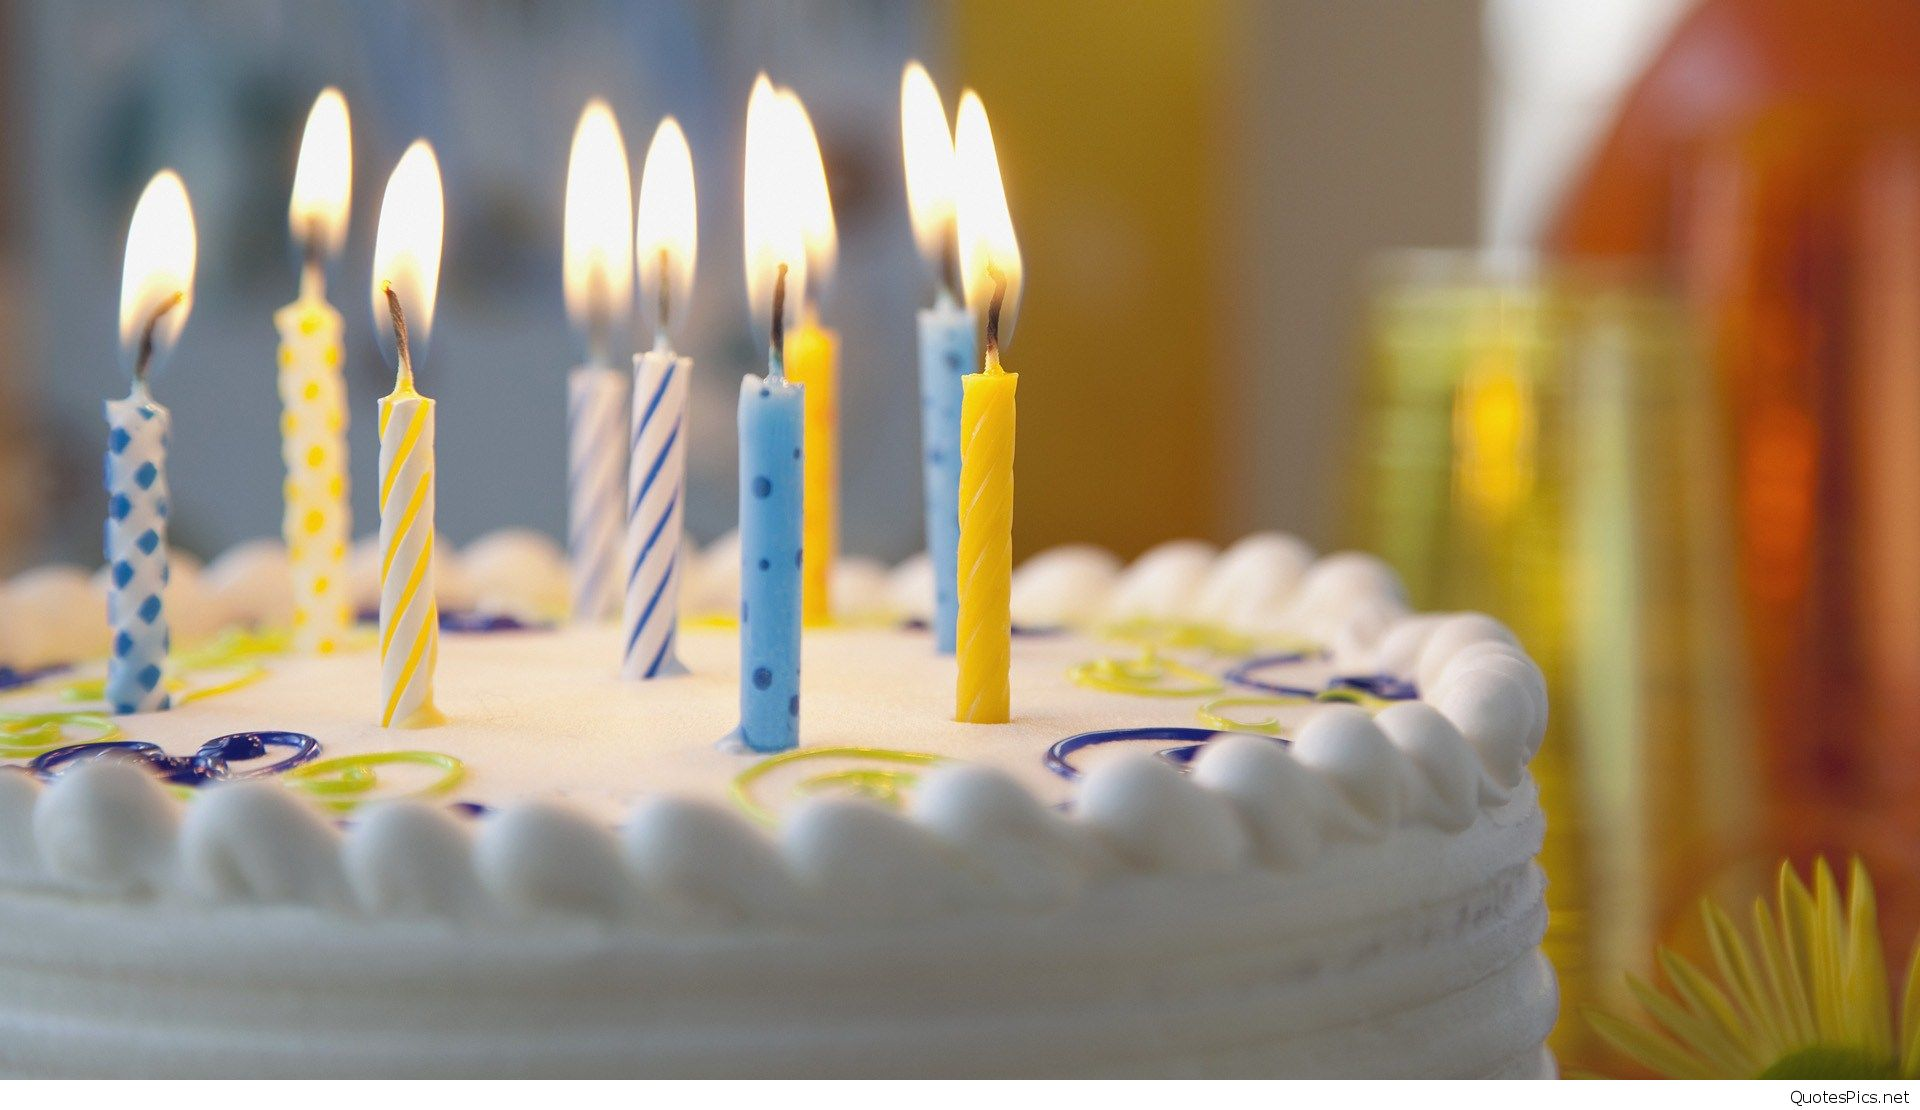 birthday candles wallpaper ; birthday-cake-with-candles-wallpaper-4